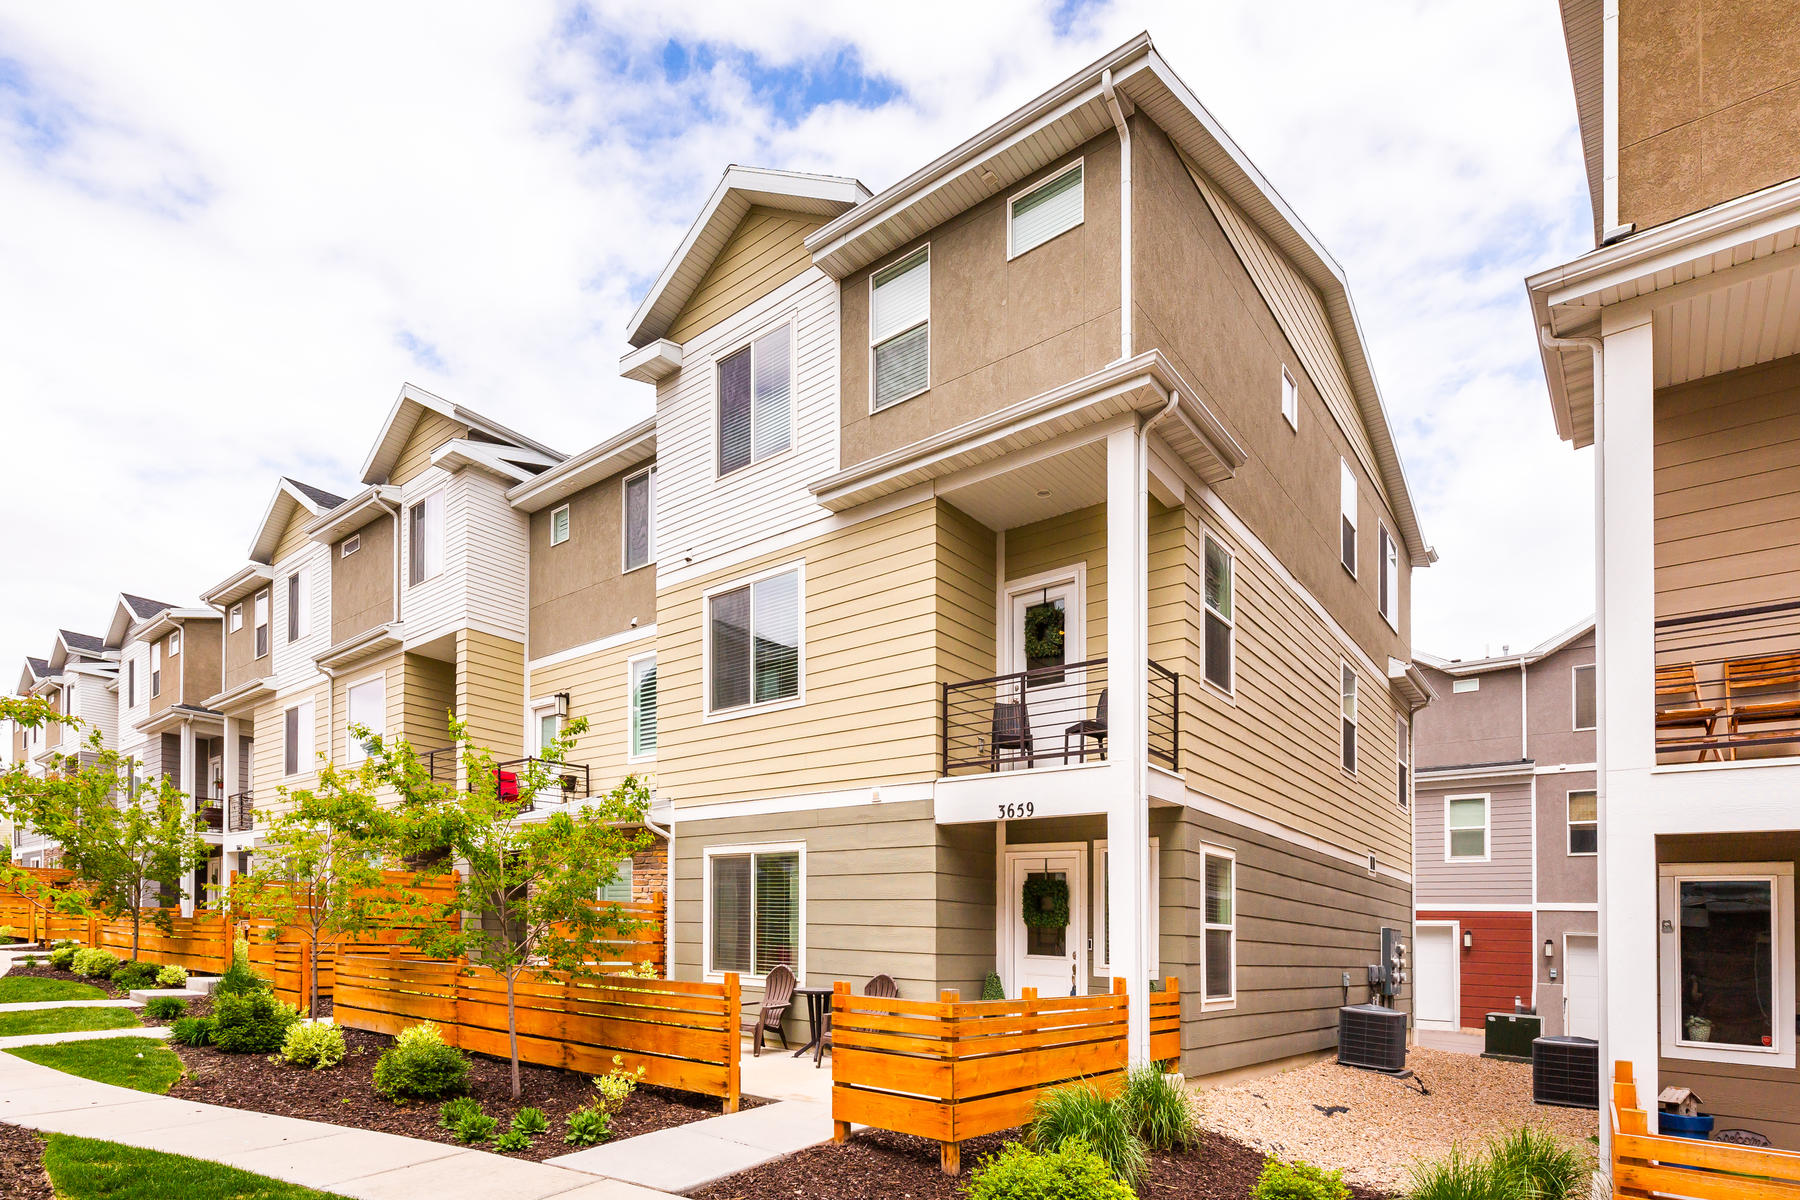 townhouses 용 매매 에 Entertainer's Dream in a Highly Desired Area in South Jordan 3659 W Golden Sky Ln South Jordan, 유타 84009 미국